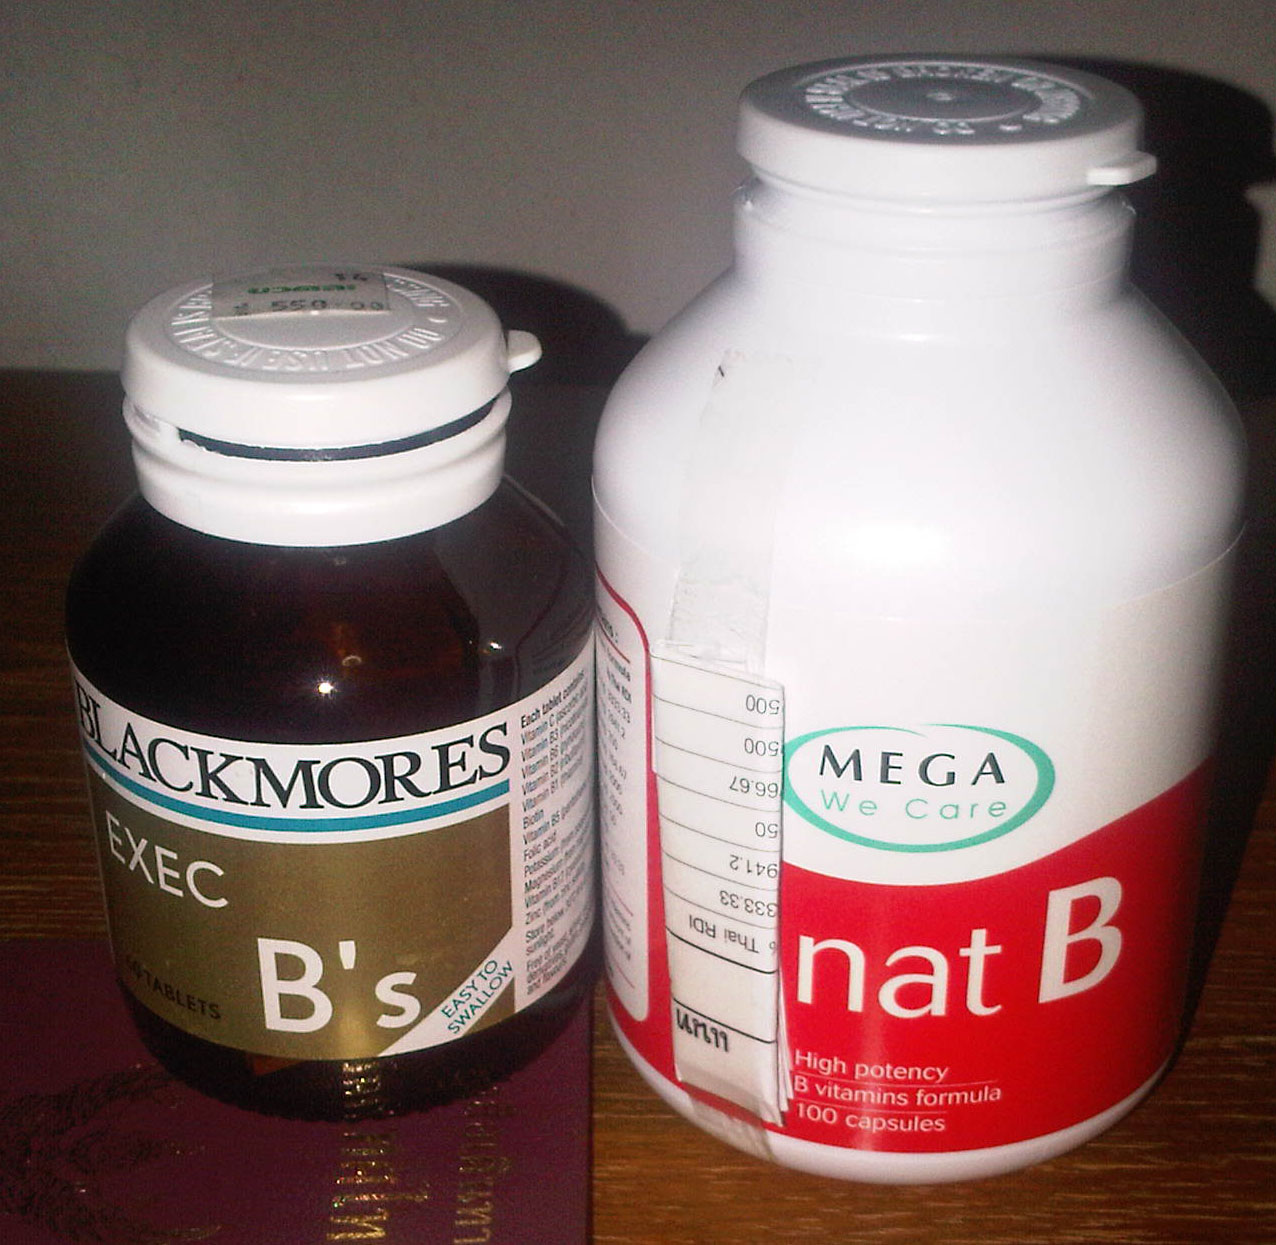 Knowledge Base Vitamin B Complex Blackmore Vs Nat B